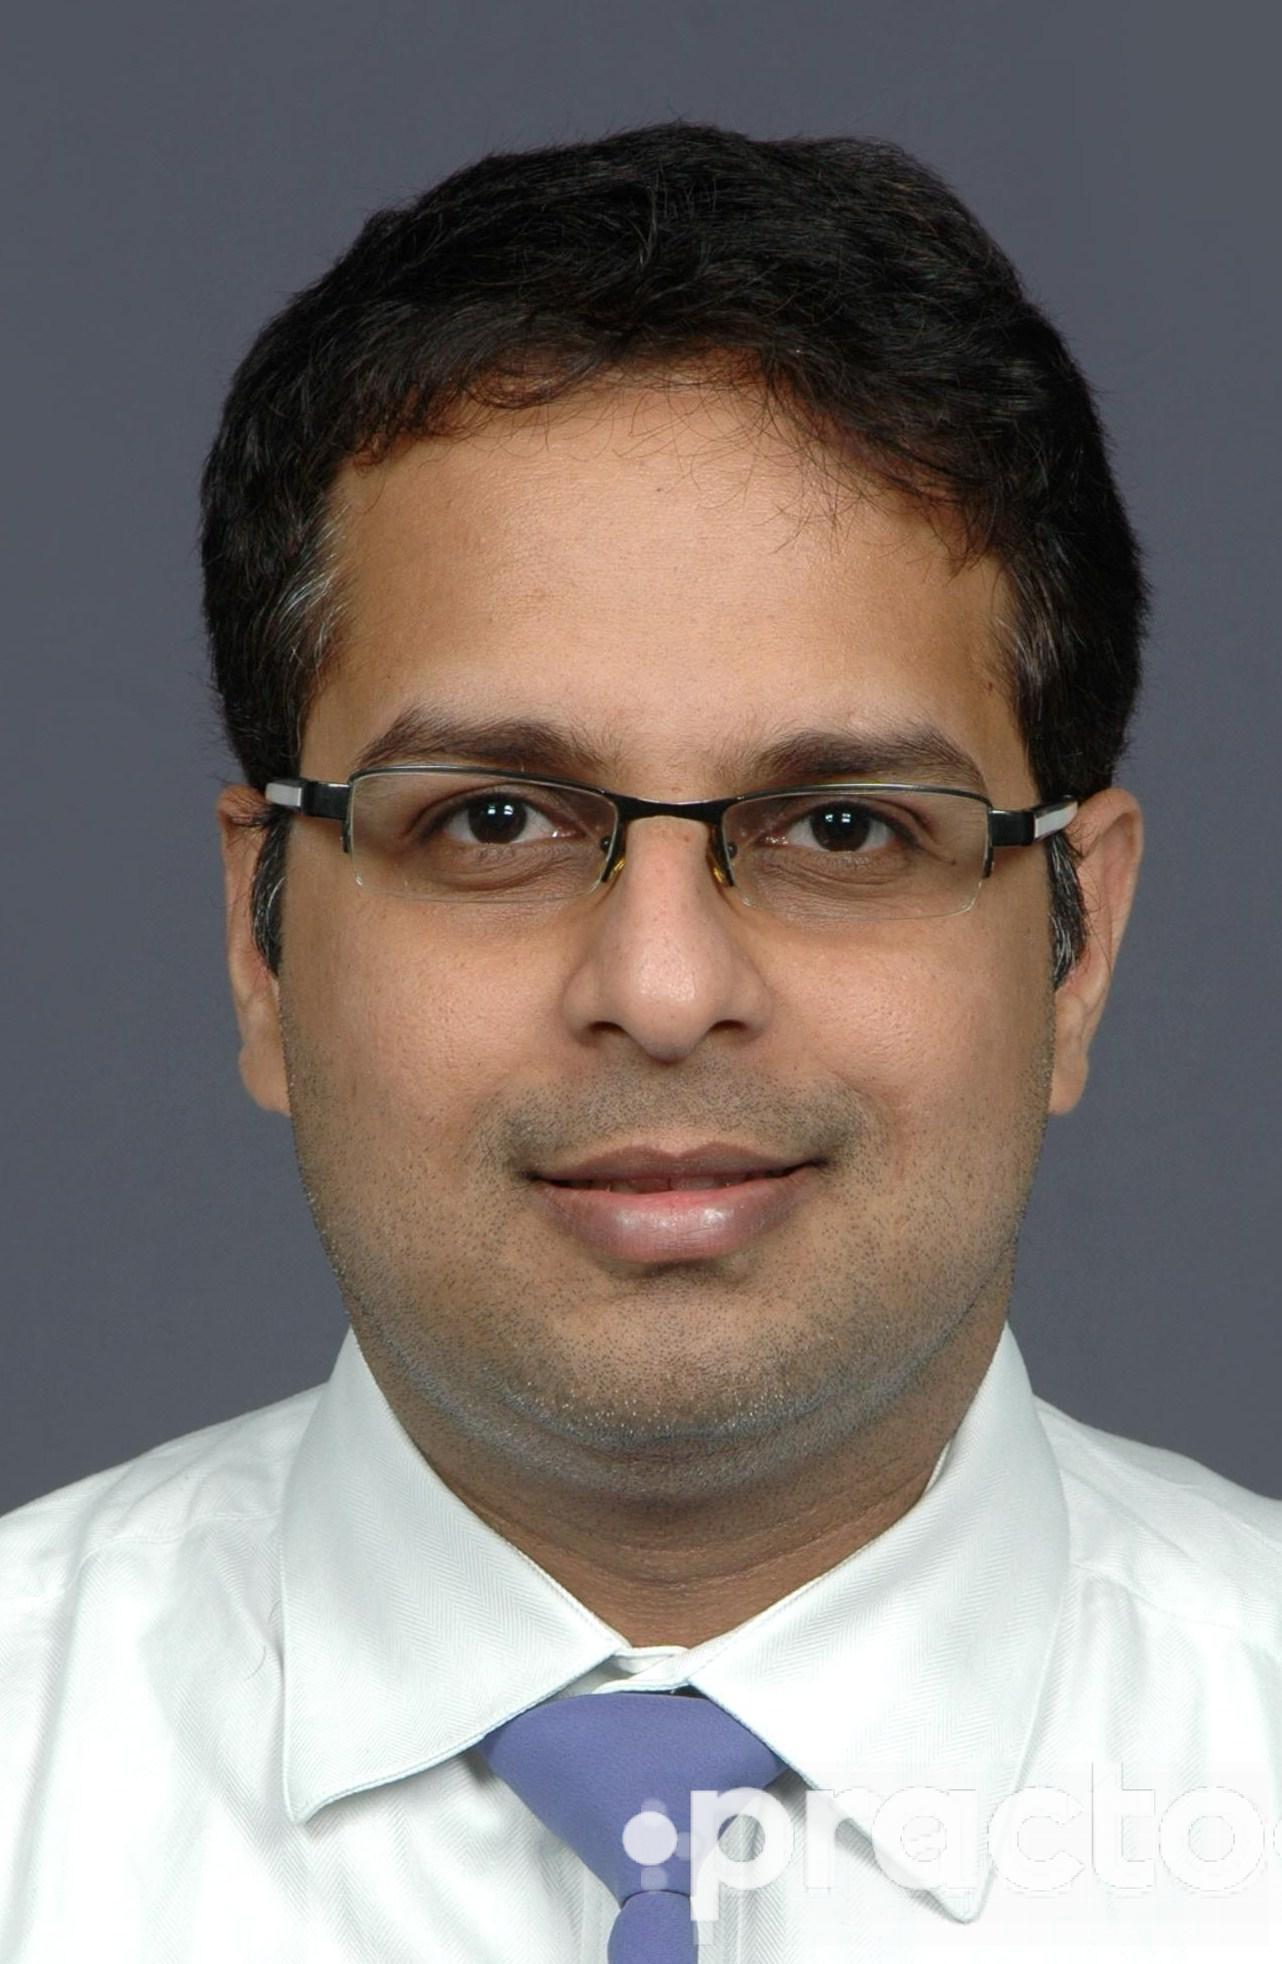 Dr. Naveen Chowdary Tummala - Spine Surgeon